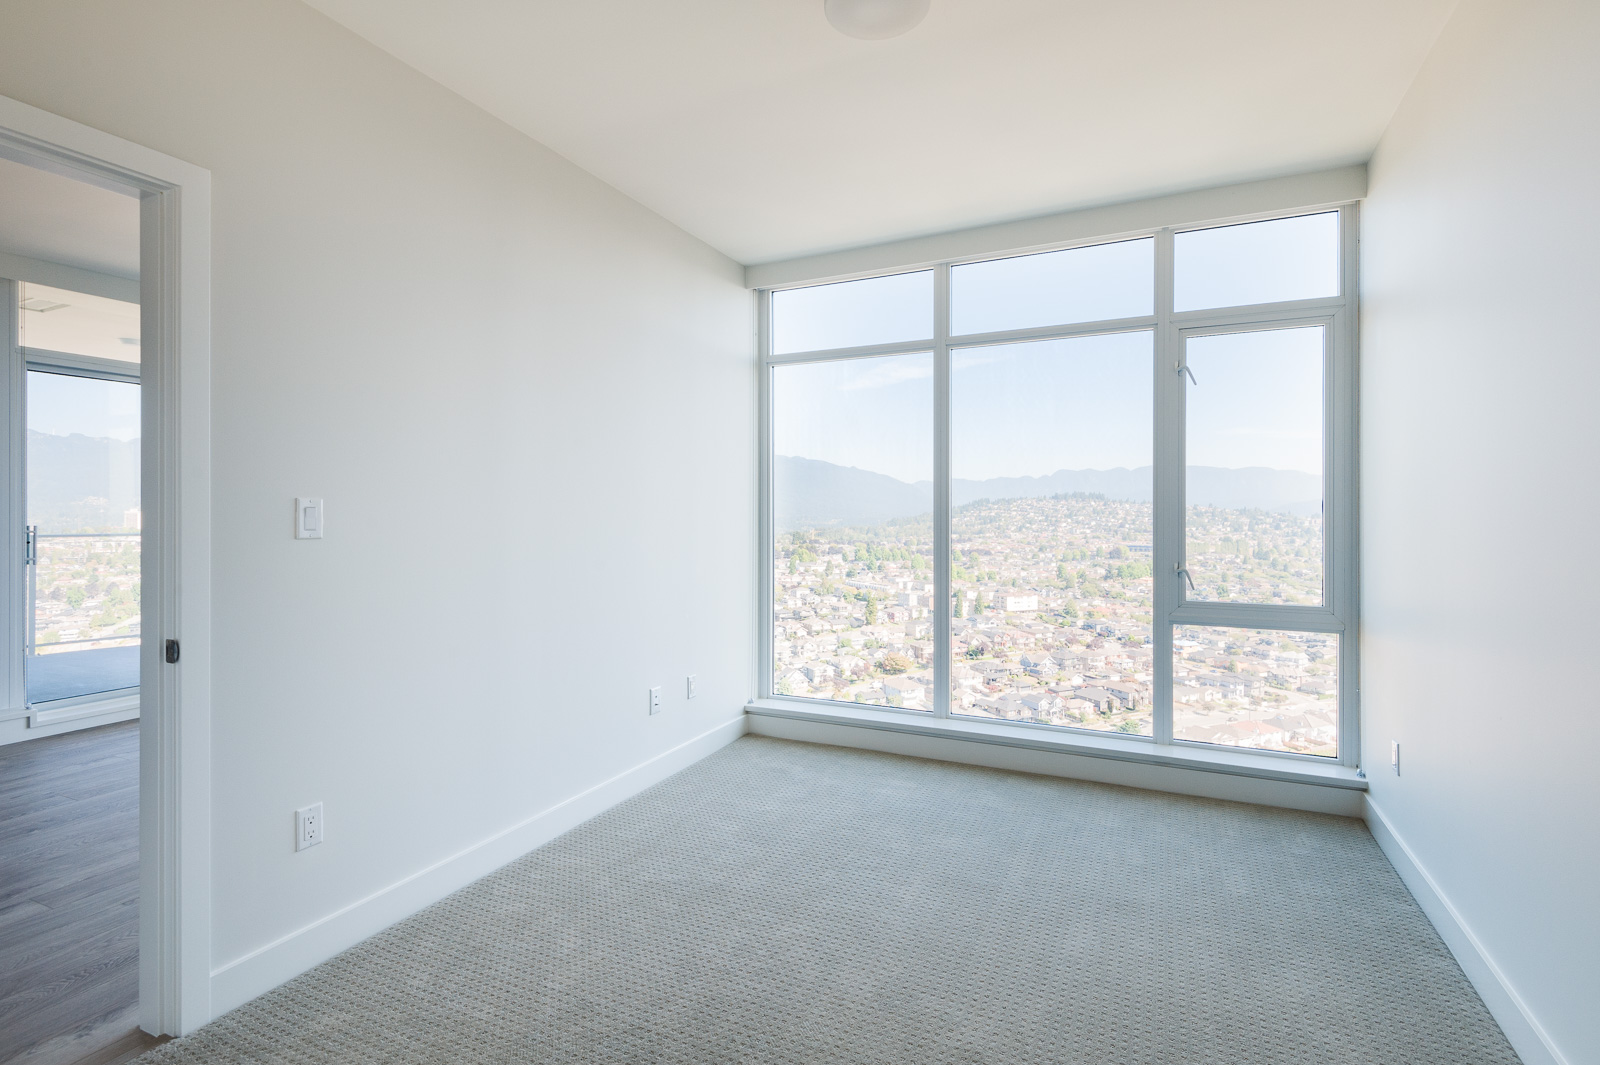 Bedroom in Brentwood condo featuring view